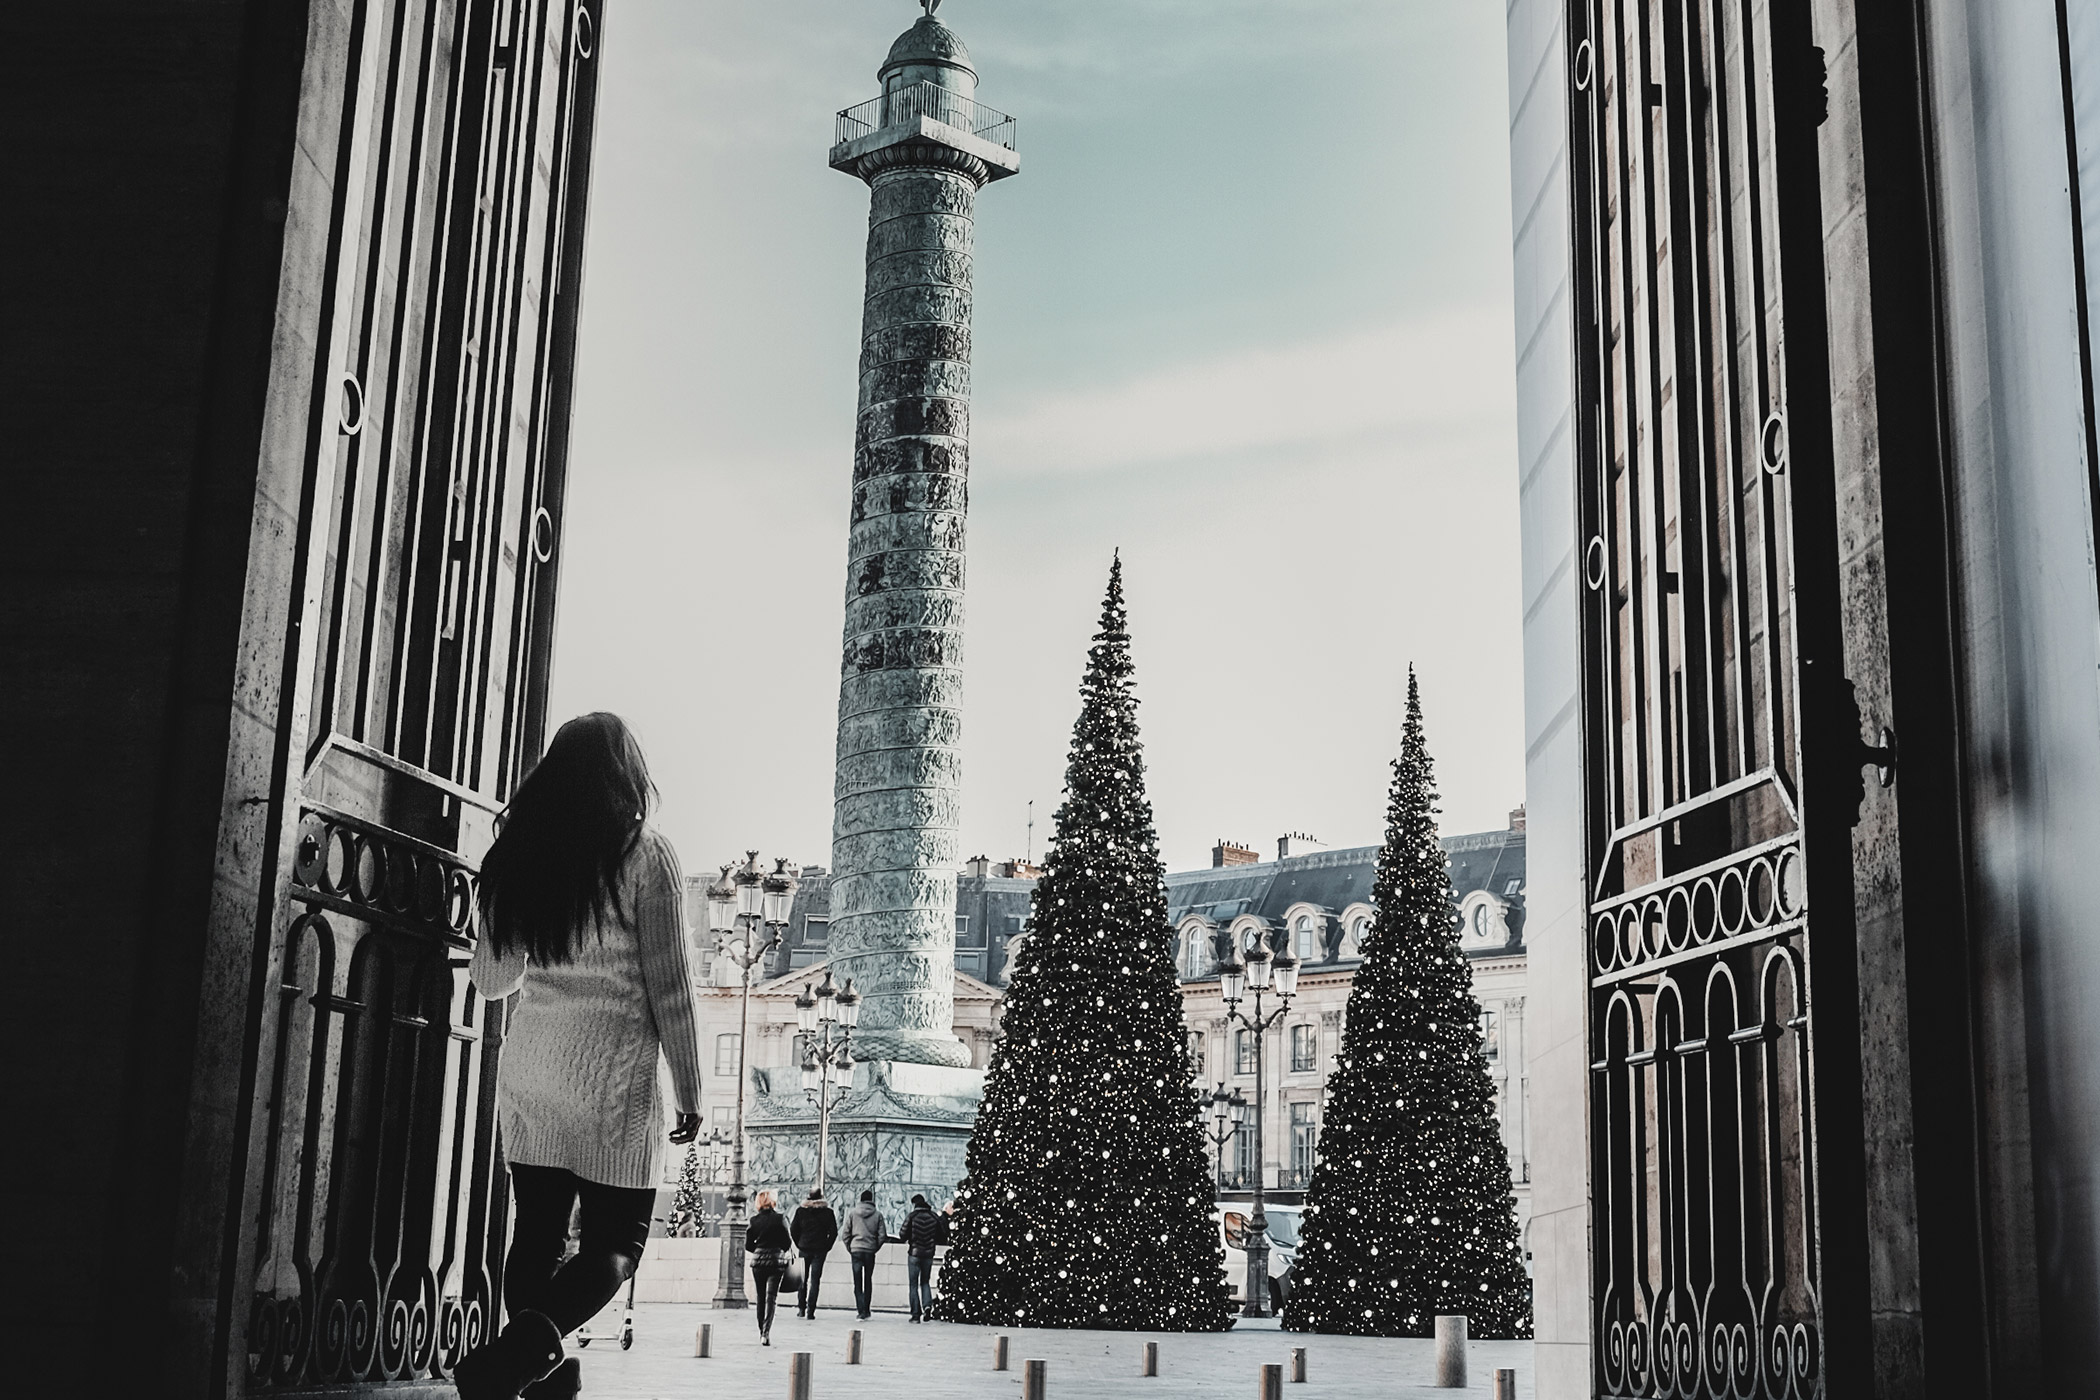 Place vendôme Paris, famous place